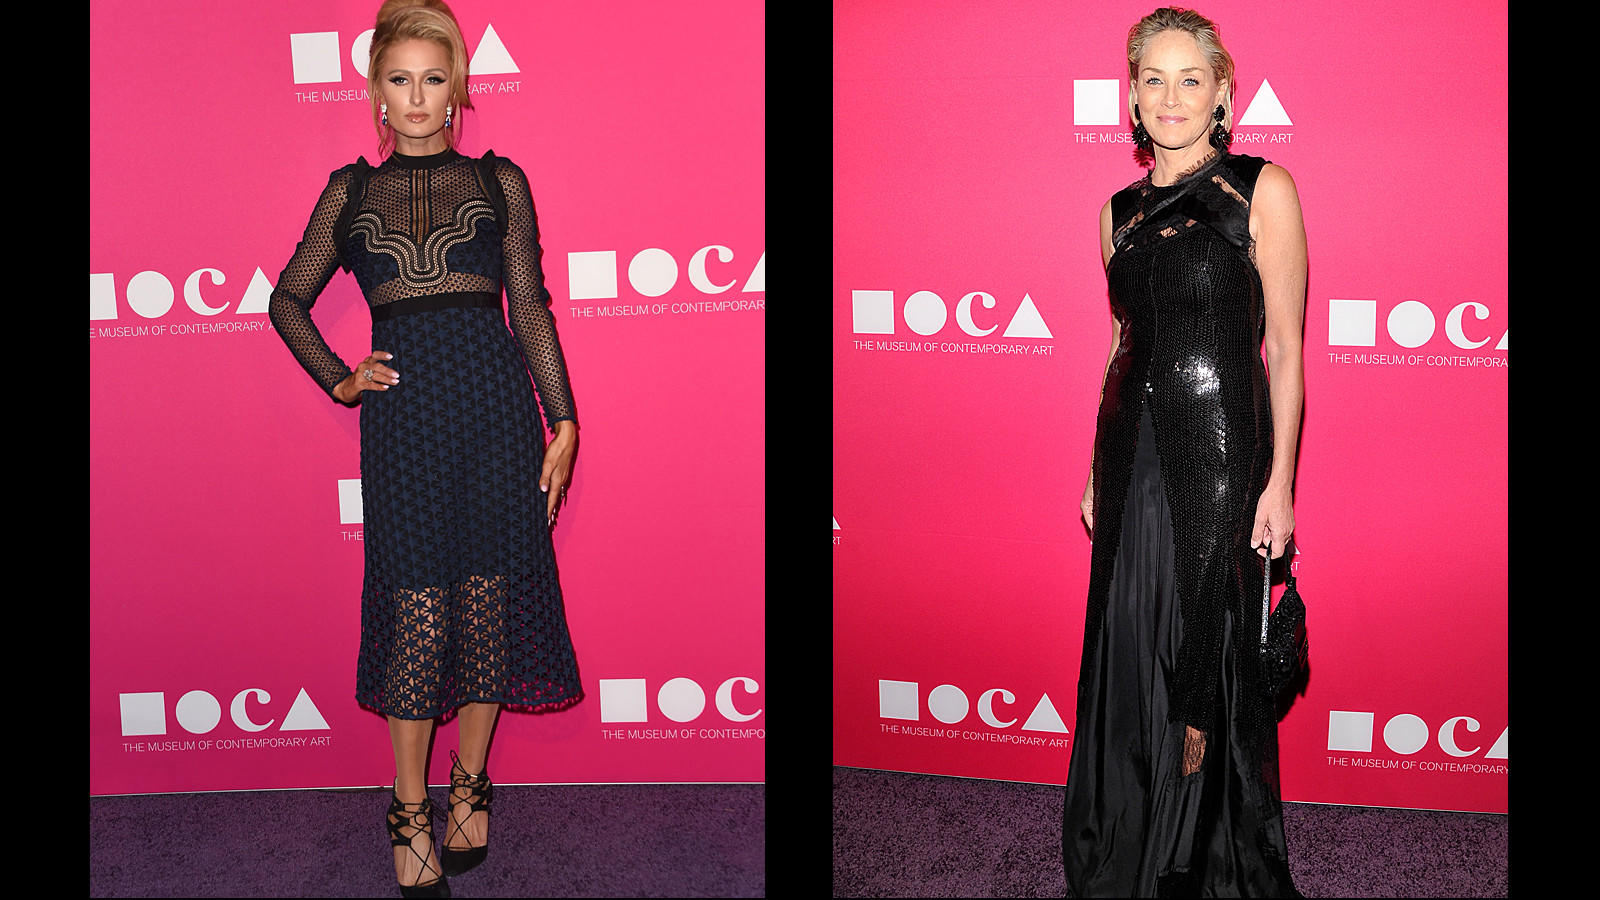 Paris Hilton and Sharon Stone (Chris Delmas /AFP/Getty Images | John Sciulli / Getty Images for MOCA)